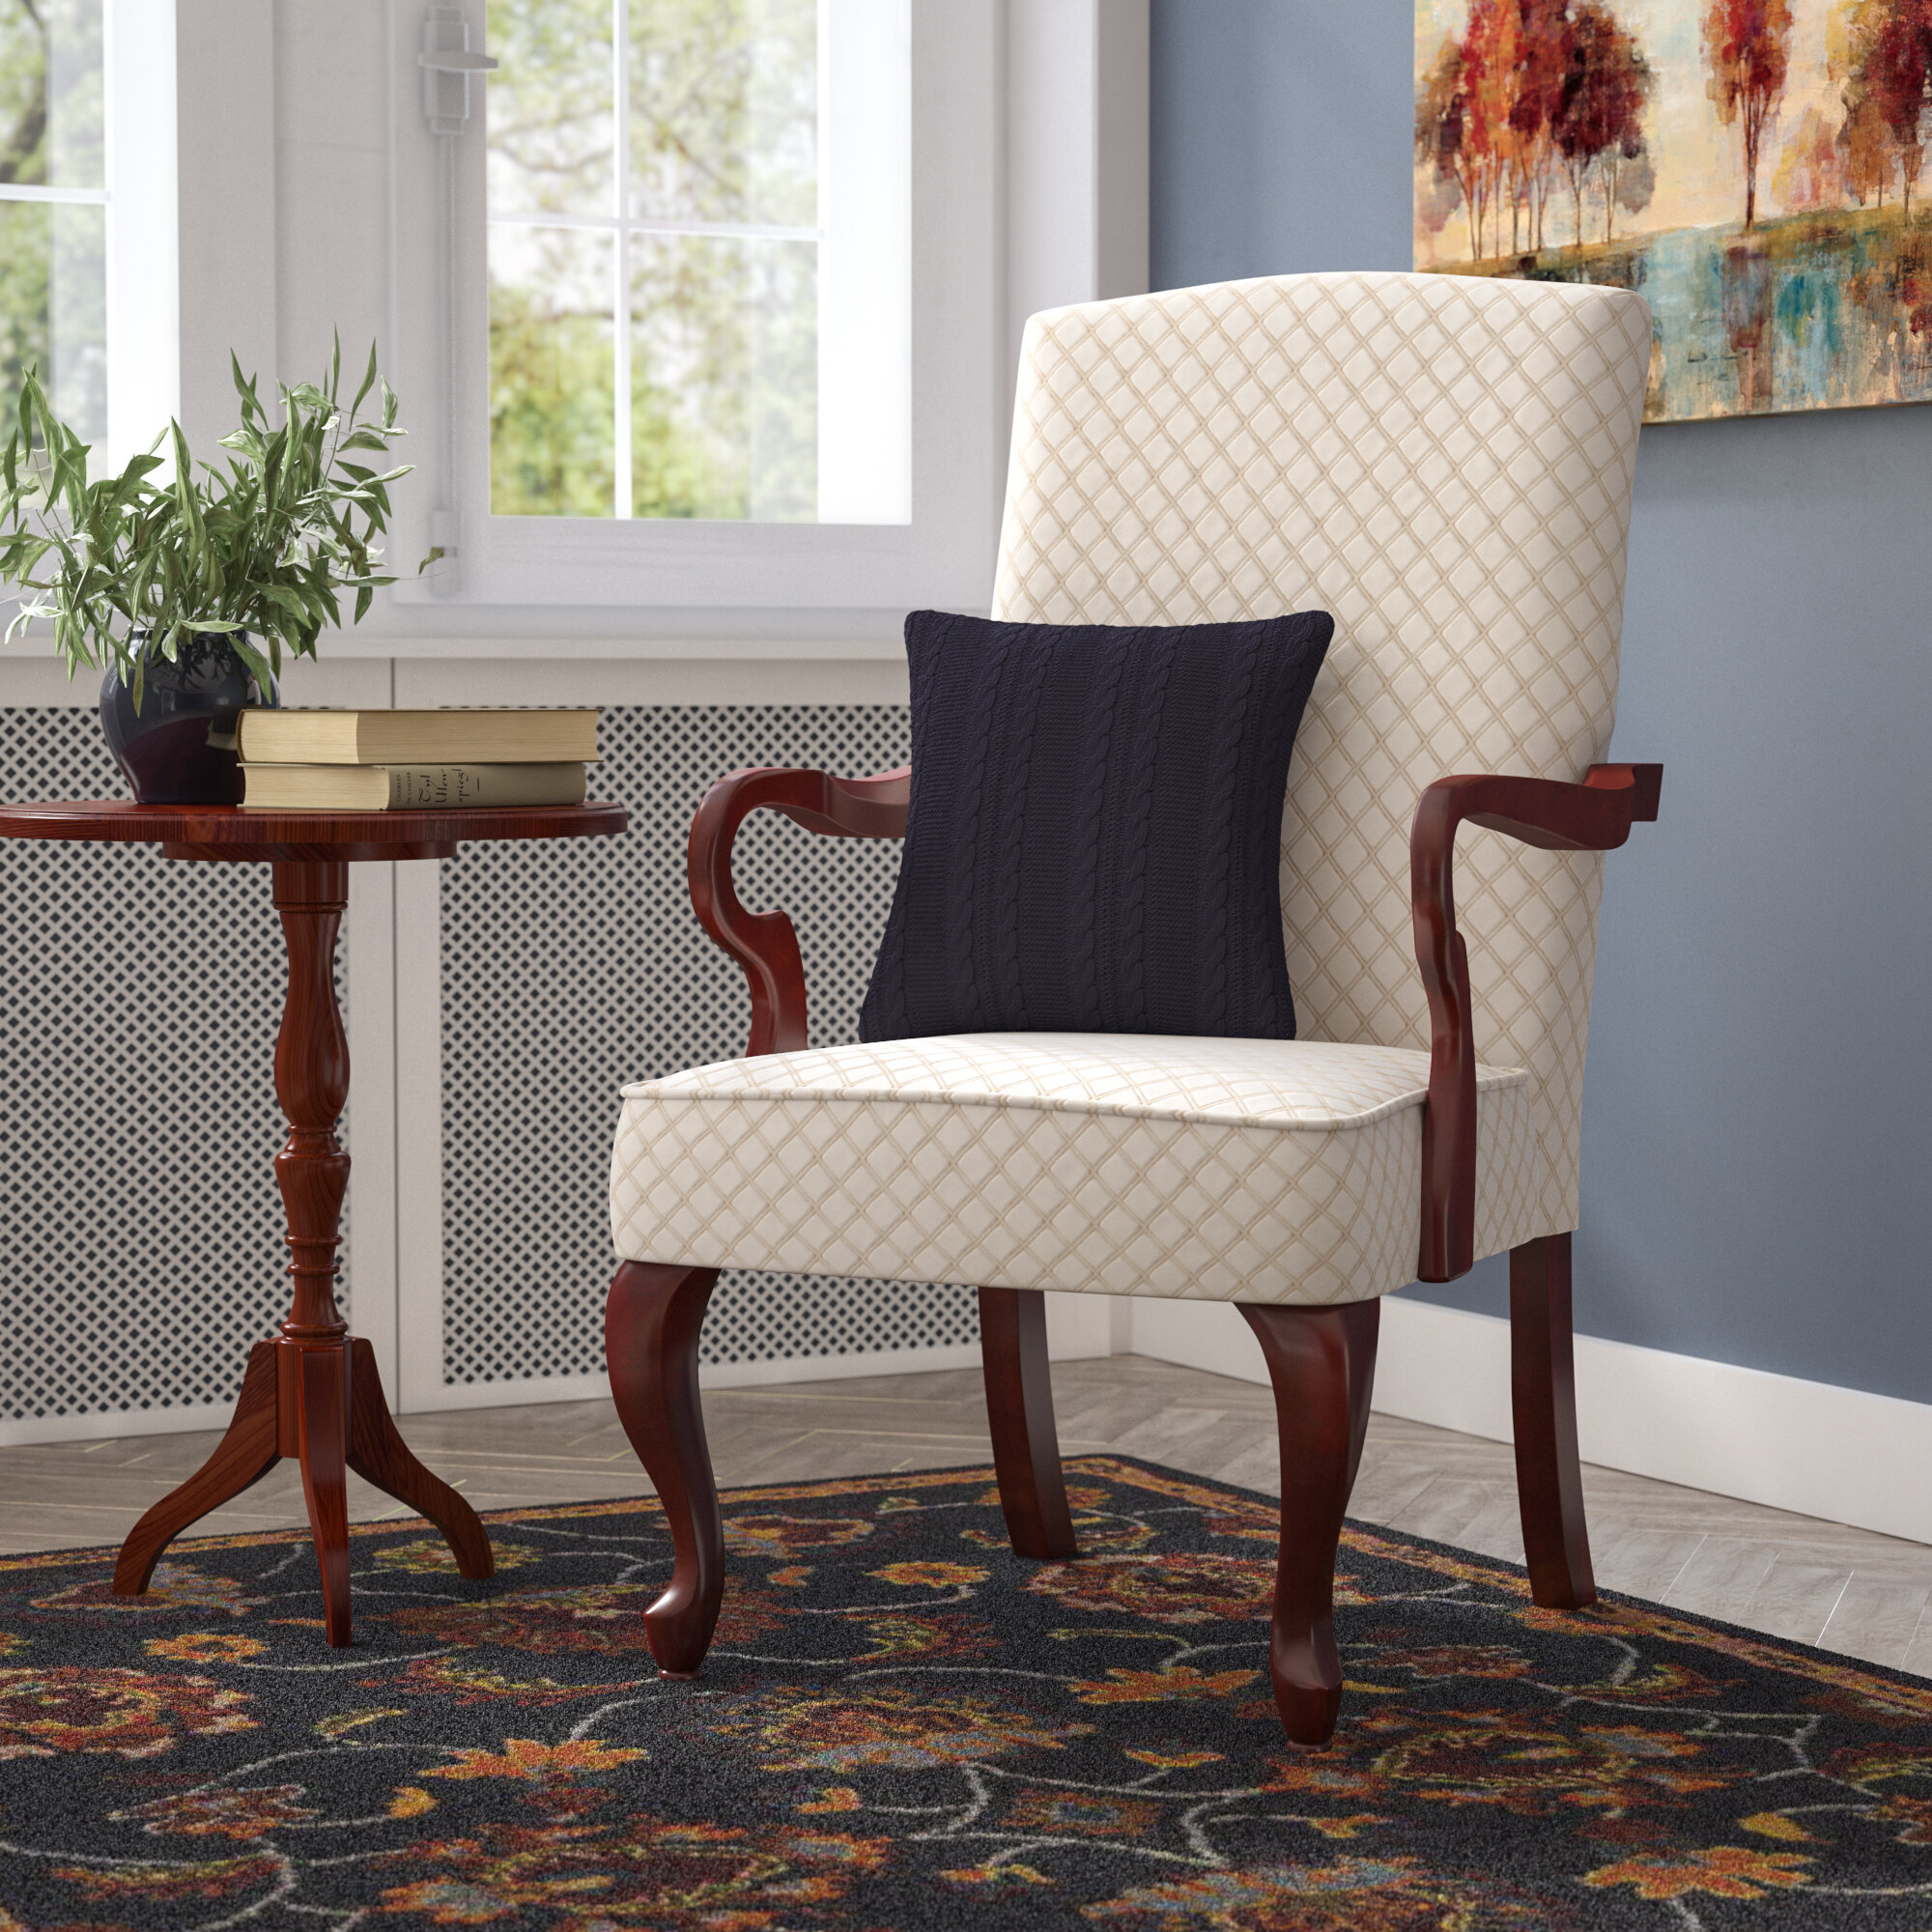 Arm Beige Accent Chairs You'Ll Love In 2021 | Wayfair For Bethine Polyester Armchairs (Set Of 2) (View 6 of 15)